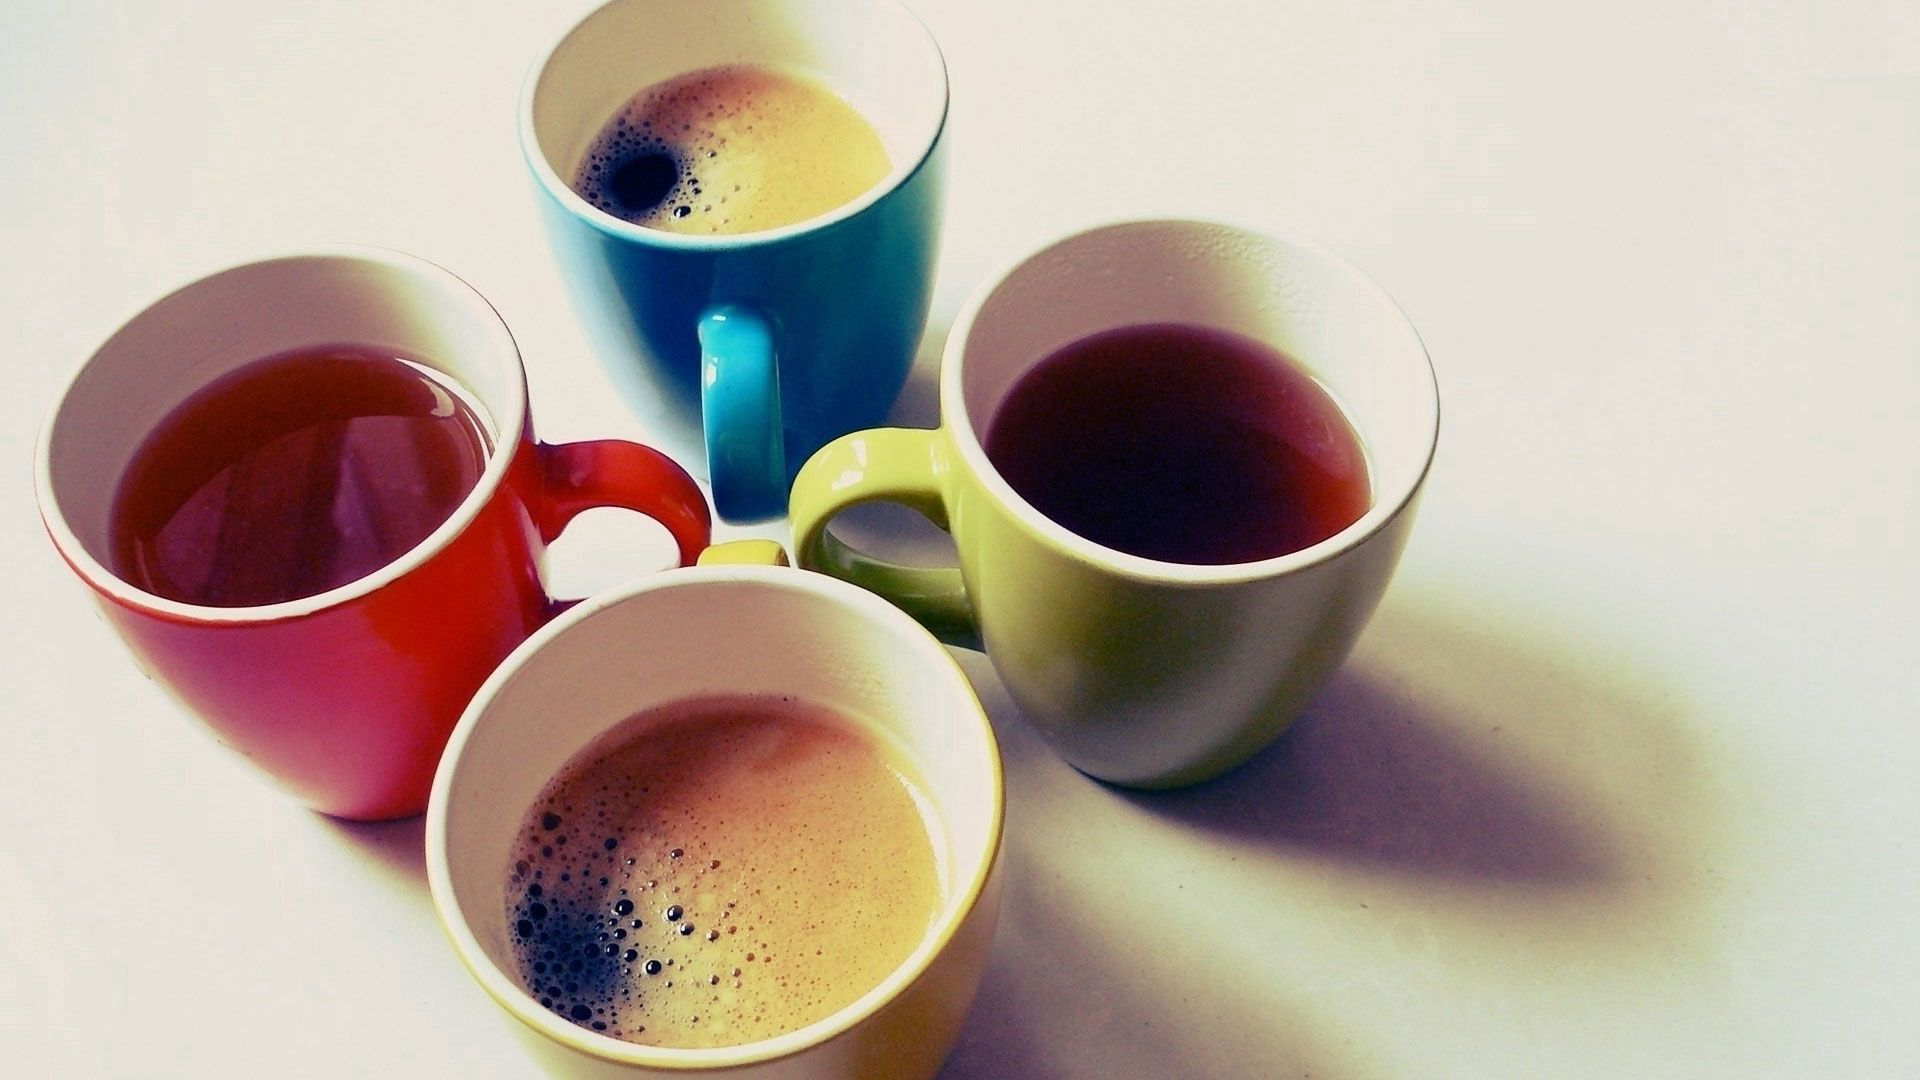 151383 download wallpaper Food, Goblets, Glasses, Tea, Coffee, Multicolored screensavers and pictures for free